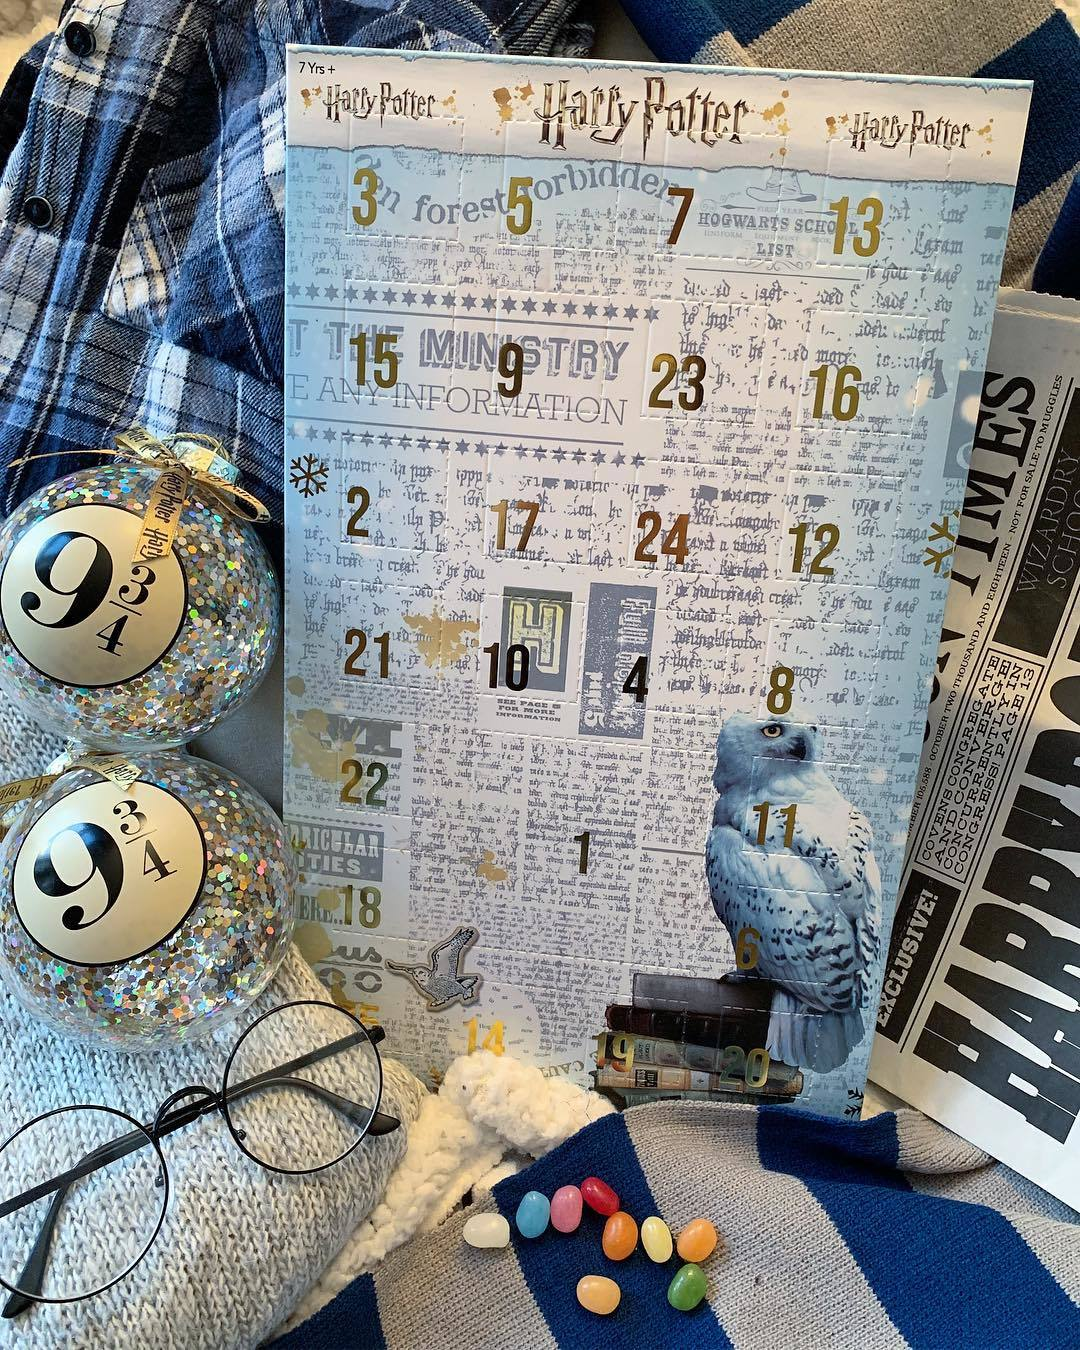 Harry Potter Advent Calendar.Our Harry Potter Advent Calendar Adds A Touch Of Magic To The